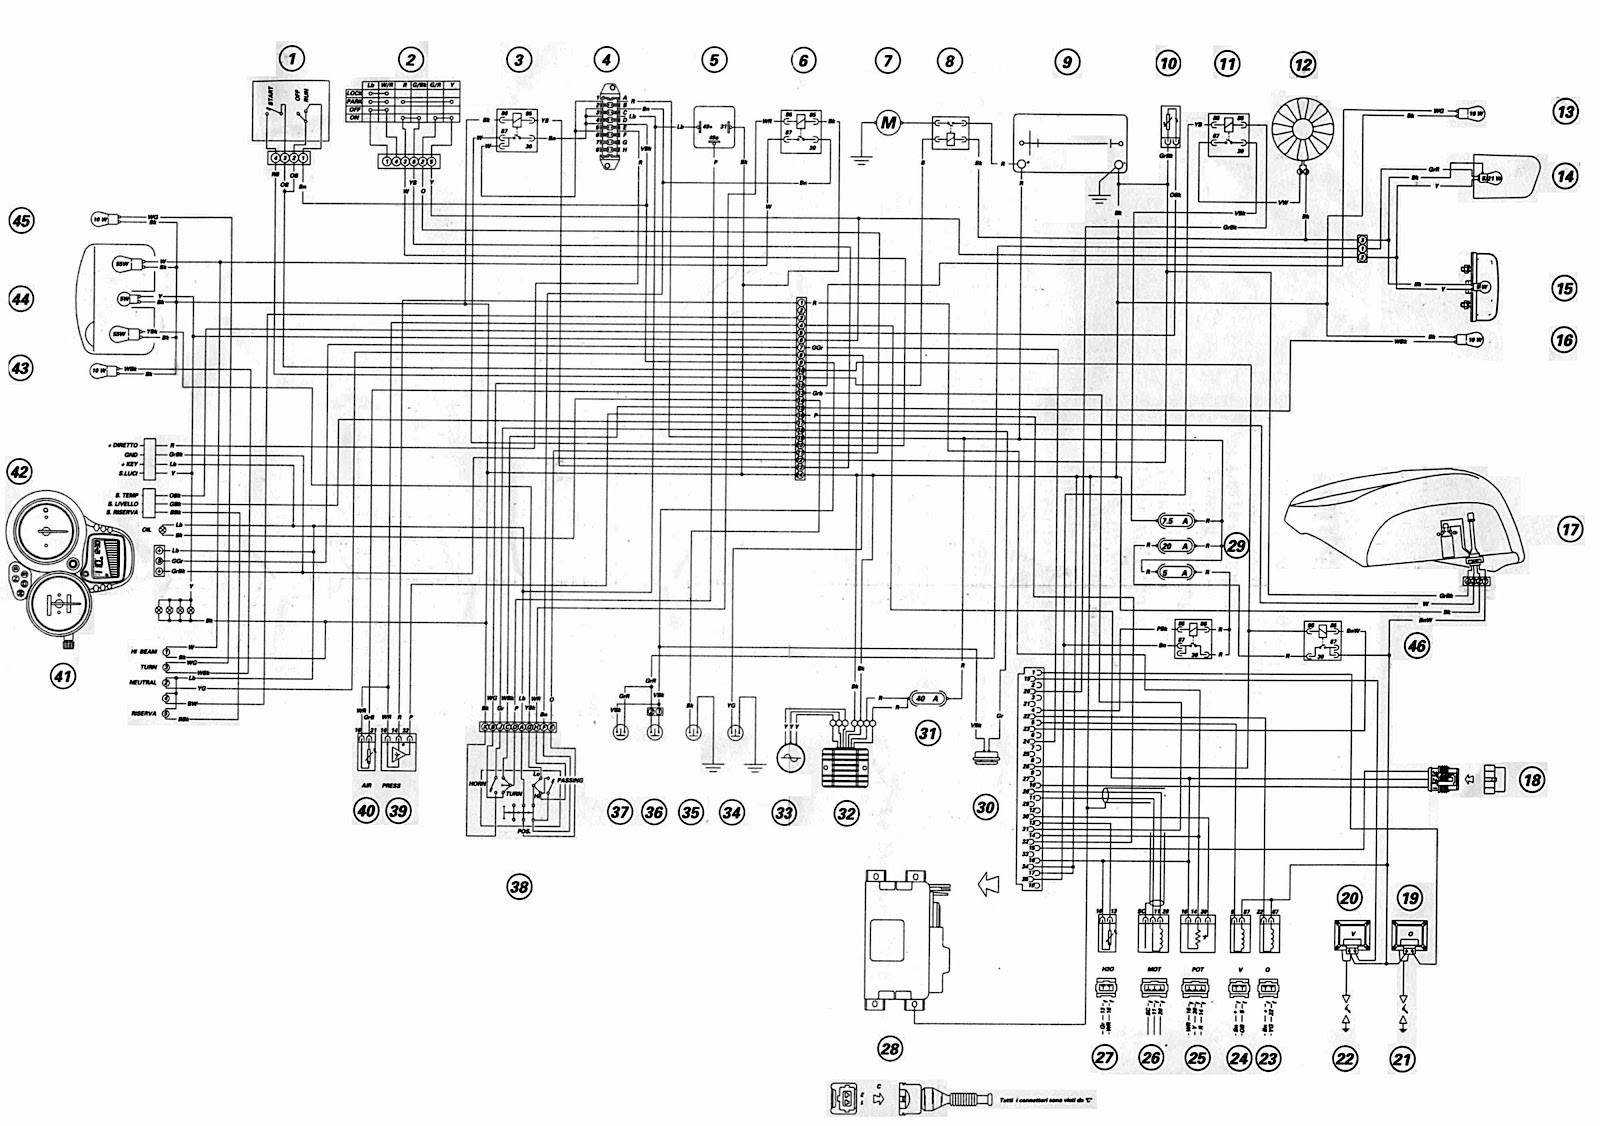 Ducati ST4 2002 Motorcycle Wiring Diagram | All about